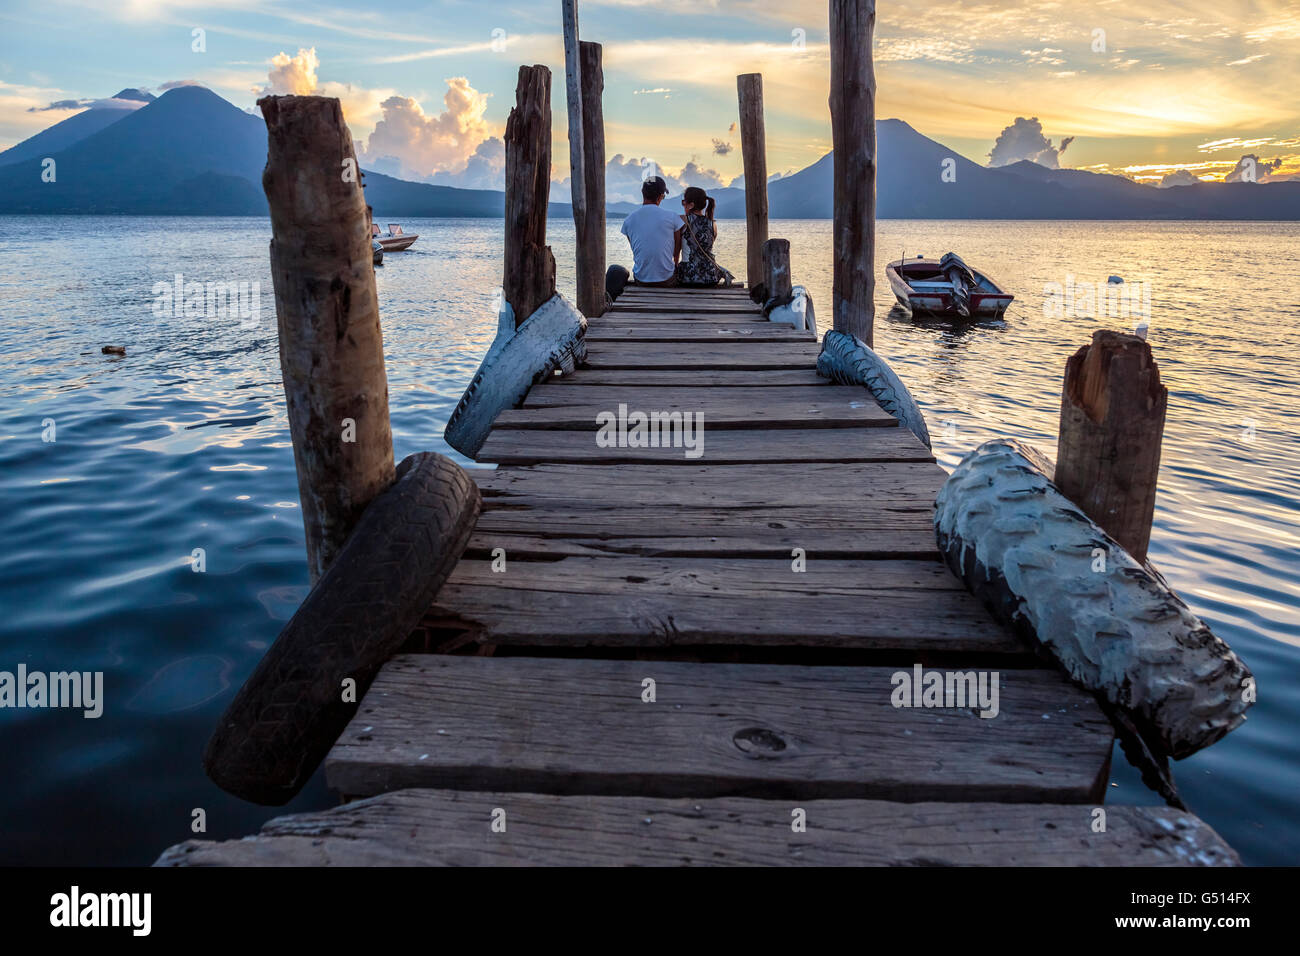 A couple of tourists sit on the dock in Panajachel as the sun sets over Lago de Atitlan, a volcanic crater lake - Stock Image